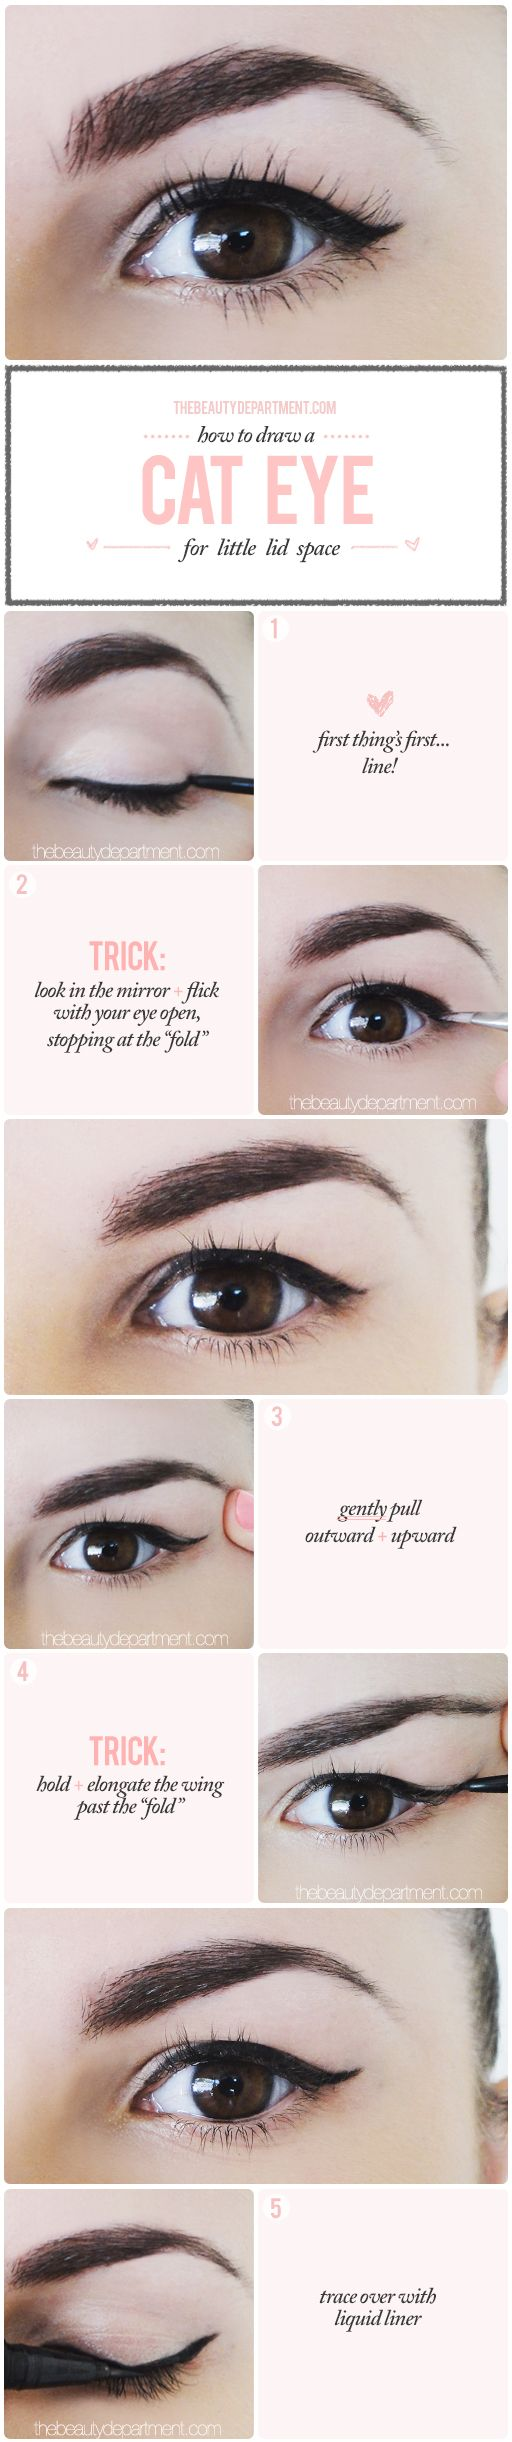 thebeautydepartment.com winged eyeliner tips and good products